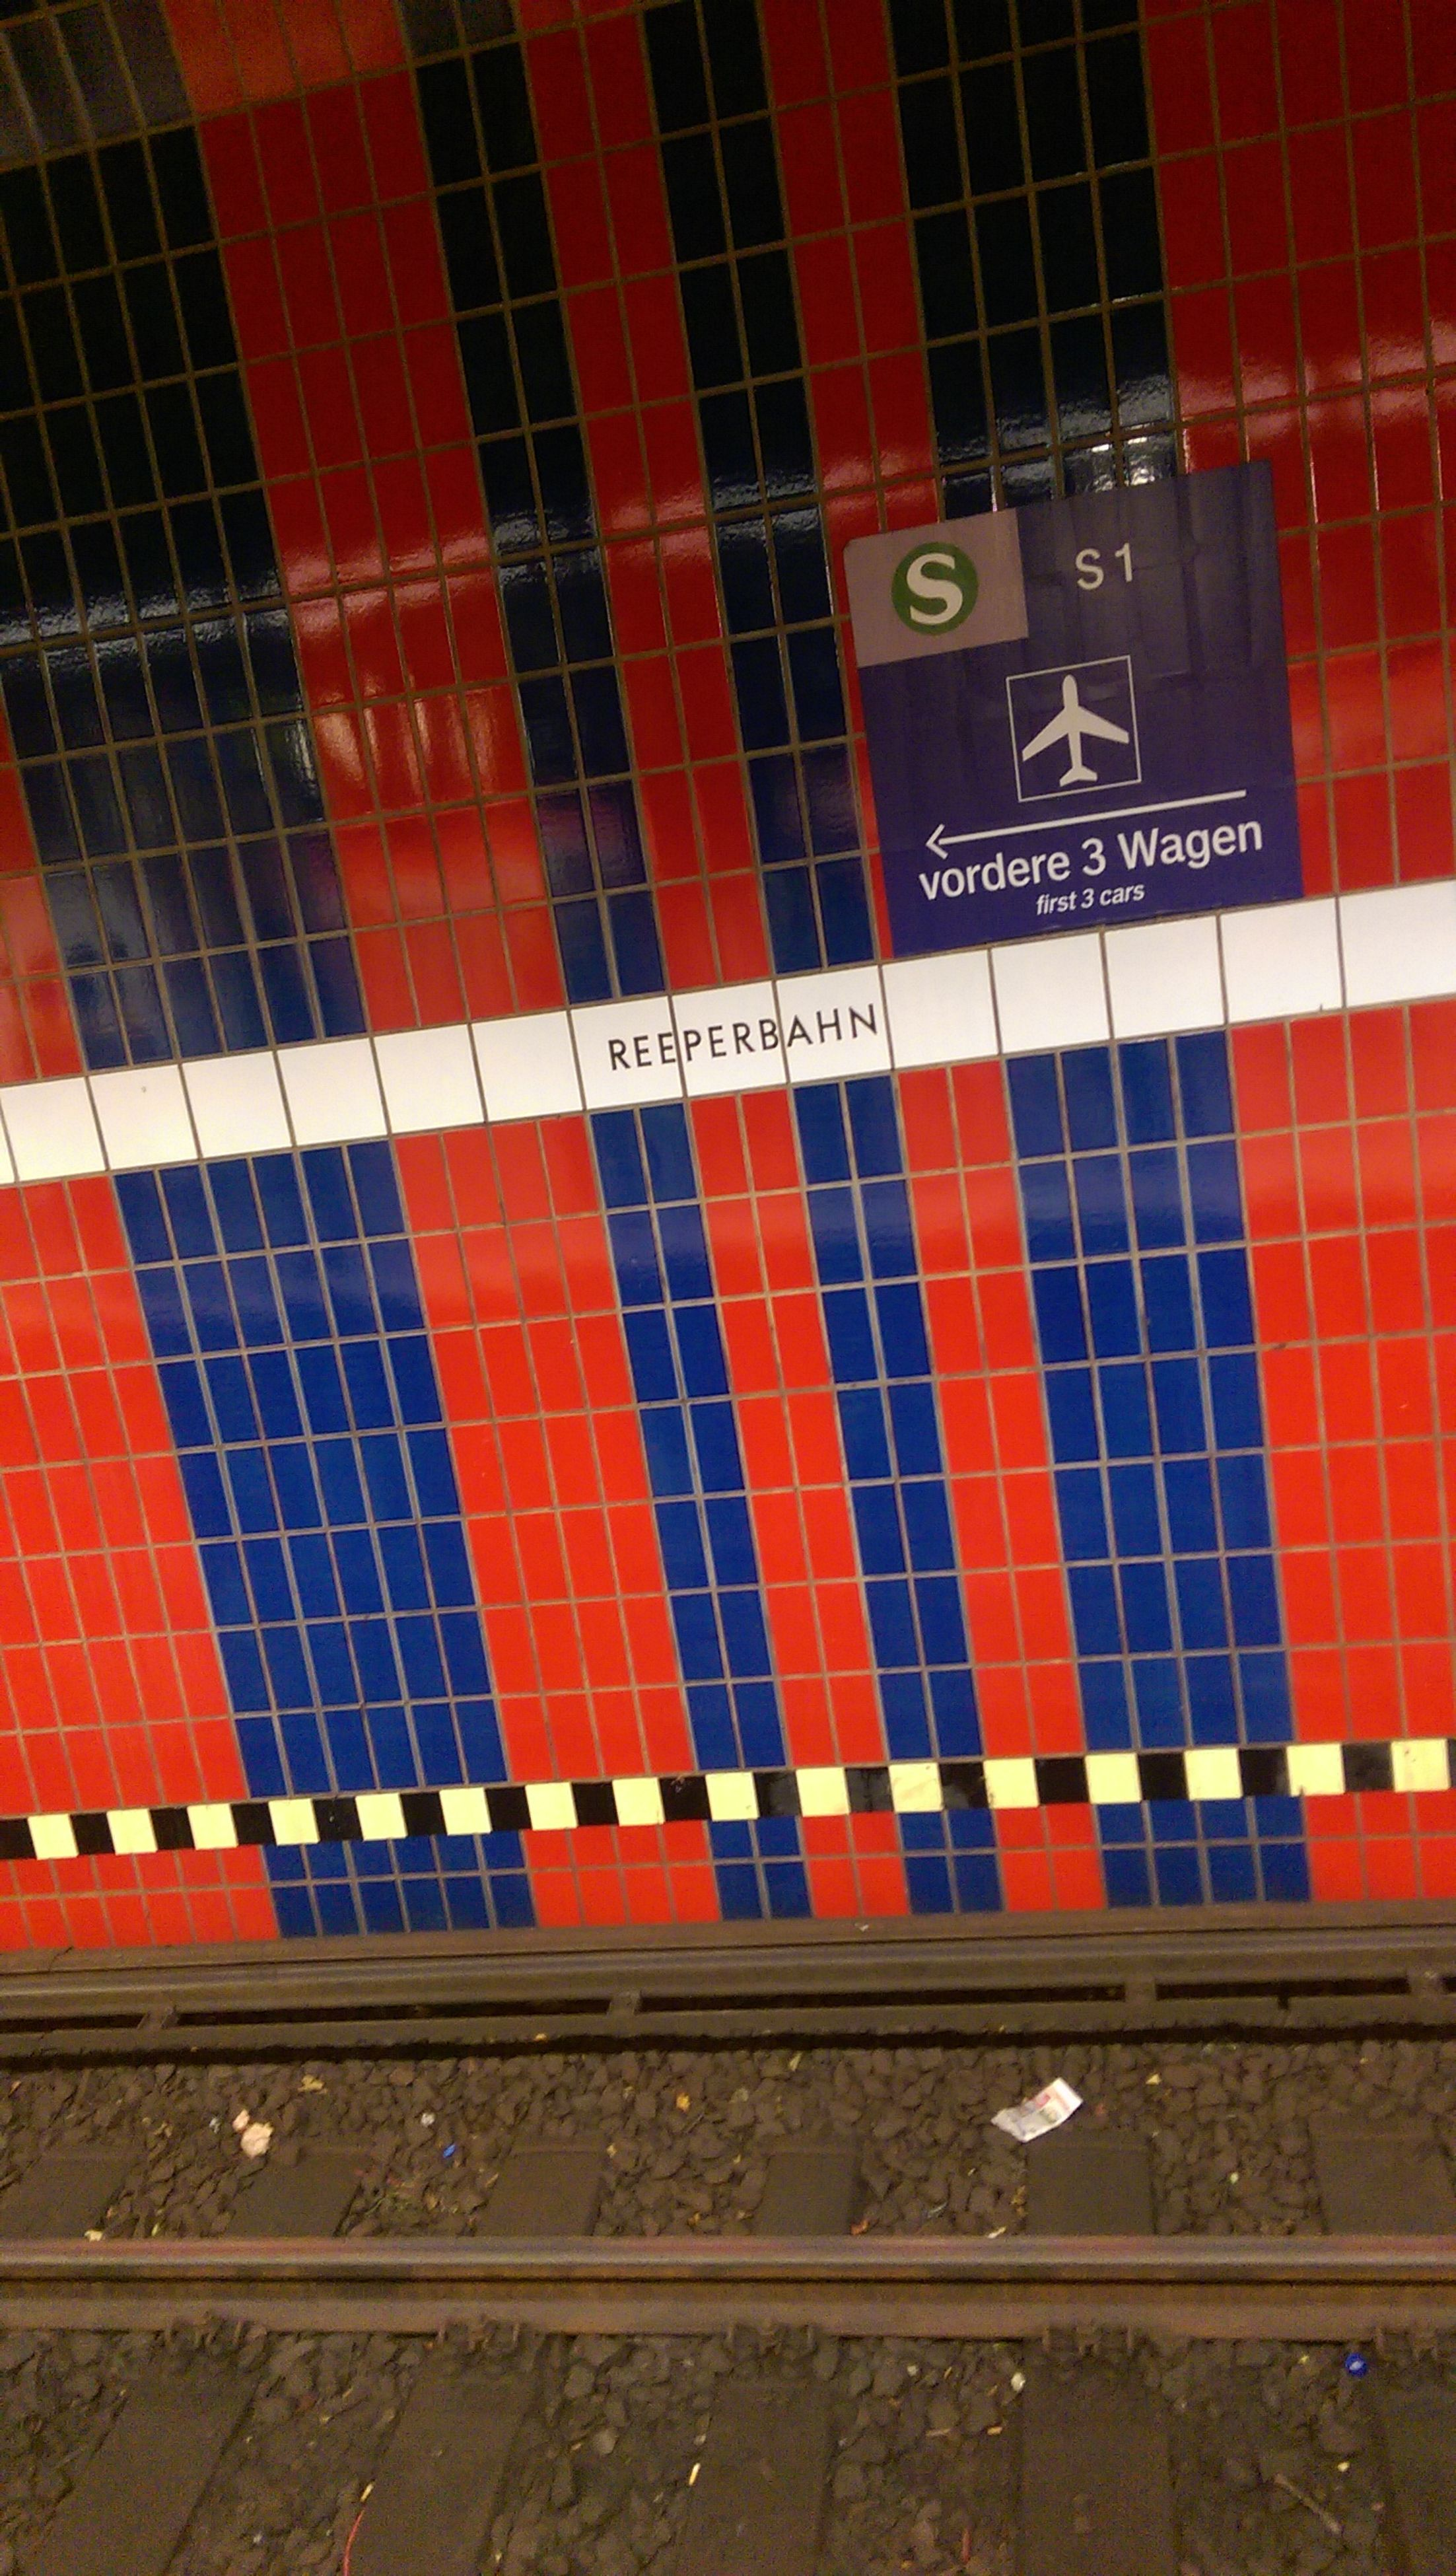 red, transportation, railroad station, indoors, communication, wall - building feature, public transportation, pattern, text, railroad station platform, subway station, number, rail transportation, western script, railroad track, in a row, built structure, tile, multi colored, no people